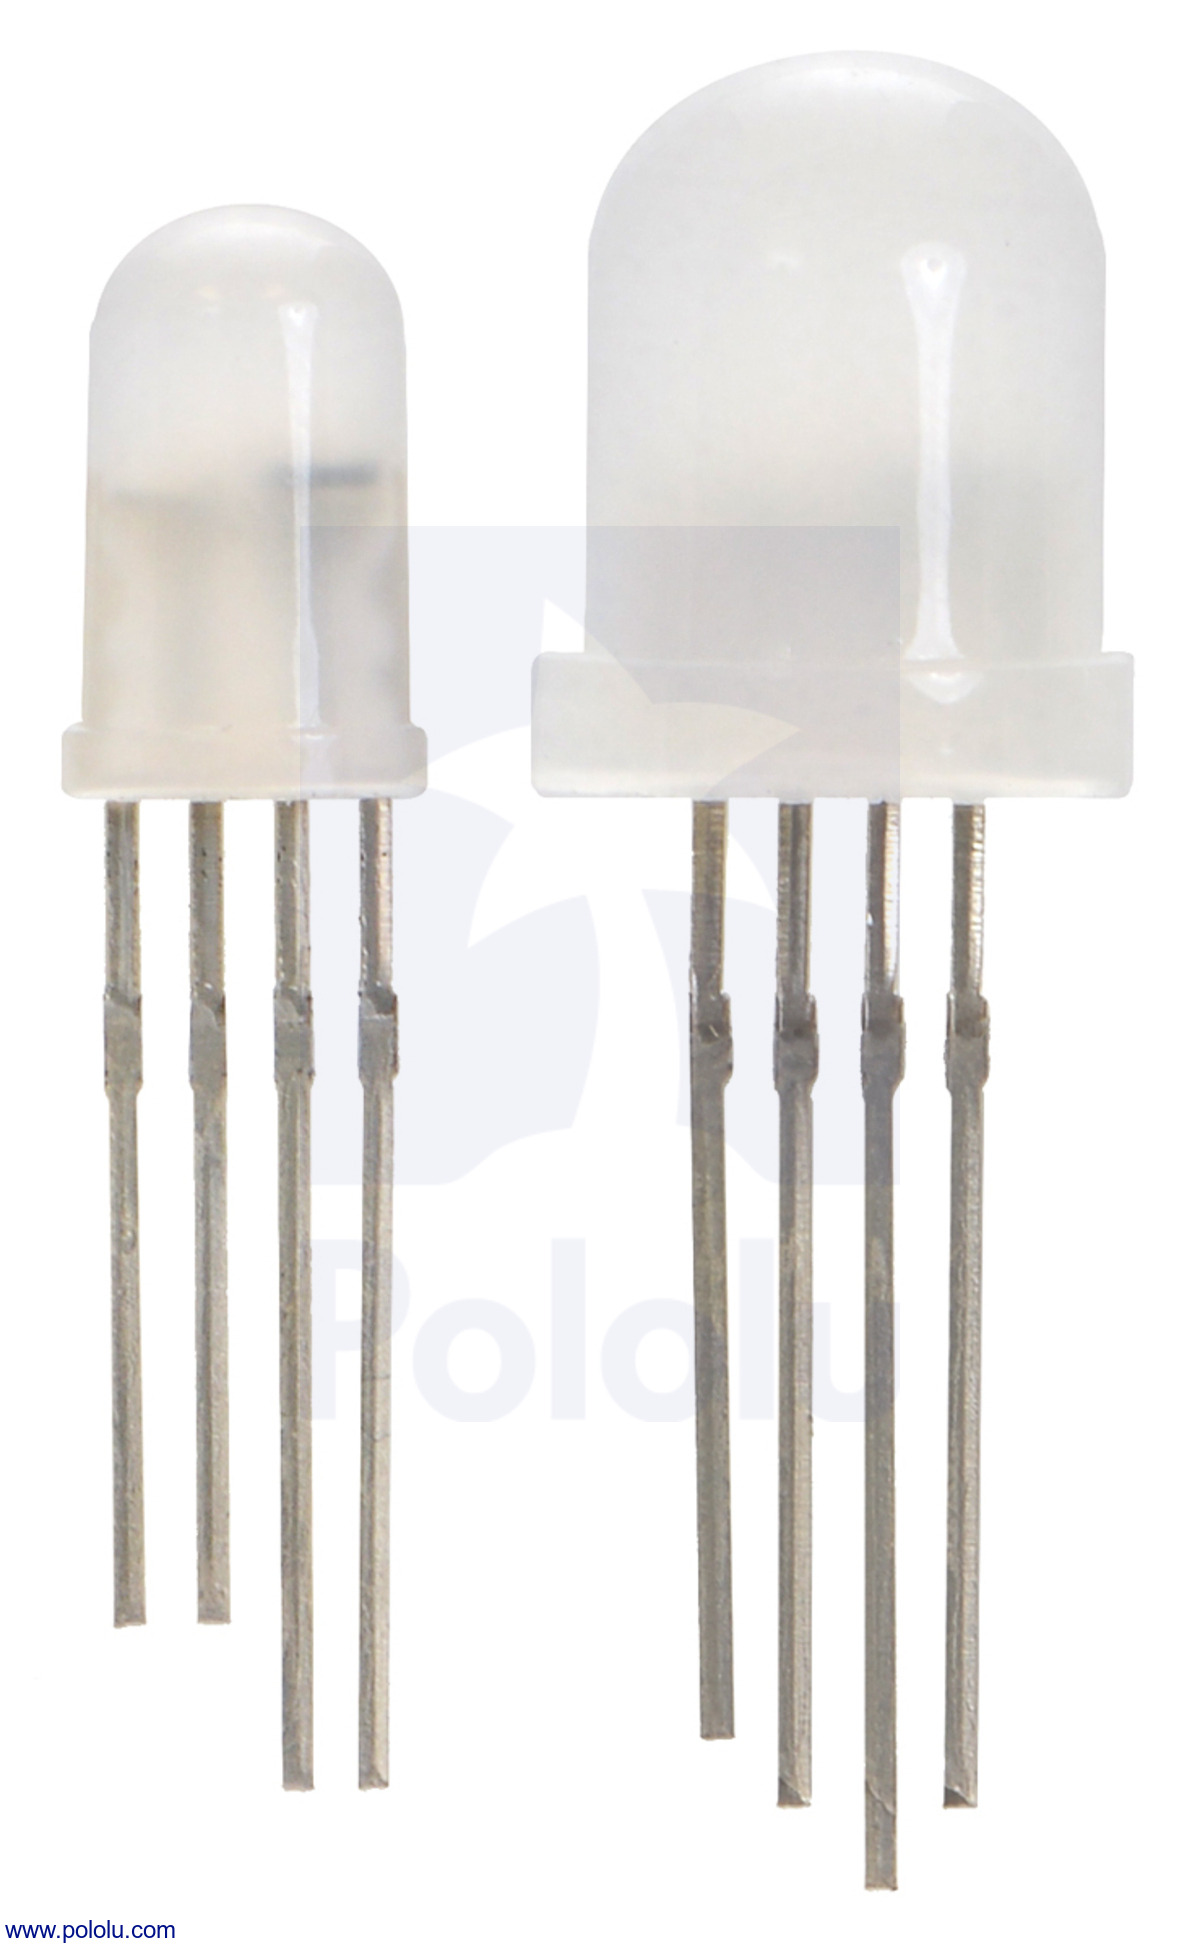 Pololu Blog Page 46 Driving Laser Diodes Comparing Discrete Vs Integrated Circuits Ee Two Different Sizes Of Addressable Rgb Led From Left To Right Their Diameters Are 5 Mm 2535 And 8 2536